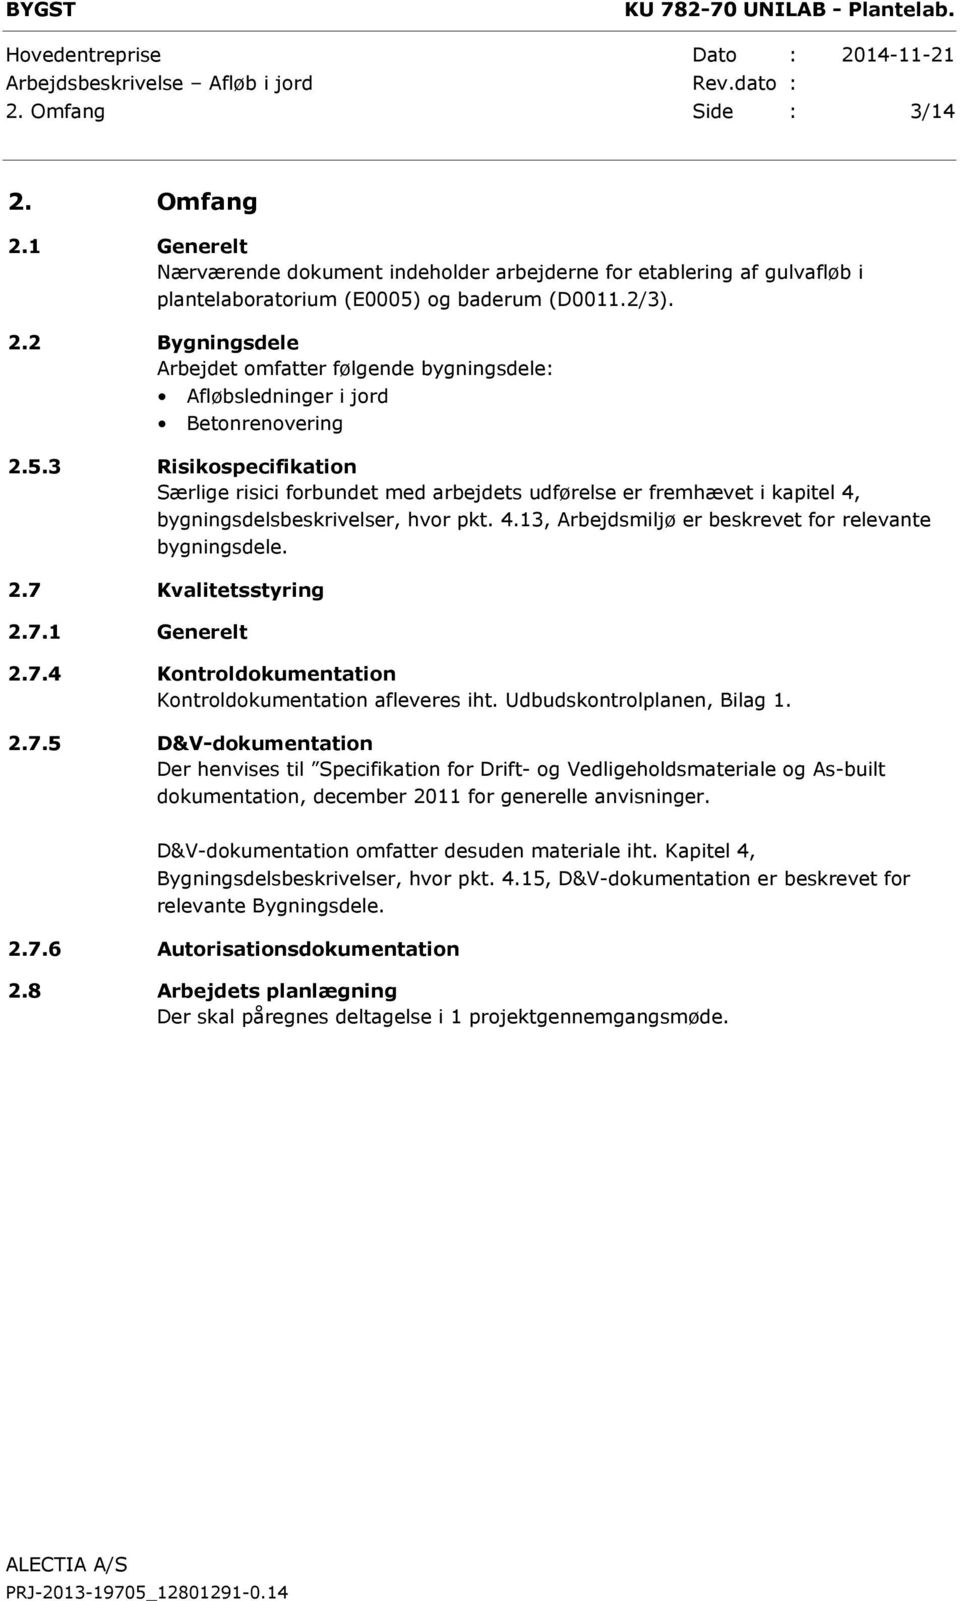 7 Kvalitetsstyring 2.7.1 Generelt 2.7.4 Kontroldokumentation Kontroldokumentation afleveres iht. Udbudskontrolplanen, Bilag 1. 2.7.5 D&V-dokumentation Der henvises til Specifikation for Drift- og Vedligeholdsmateriale og As-built dokumentation, december 2011 for generelle anvisninger.